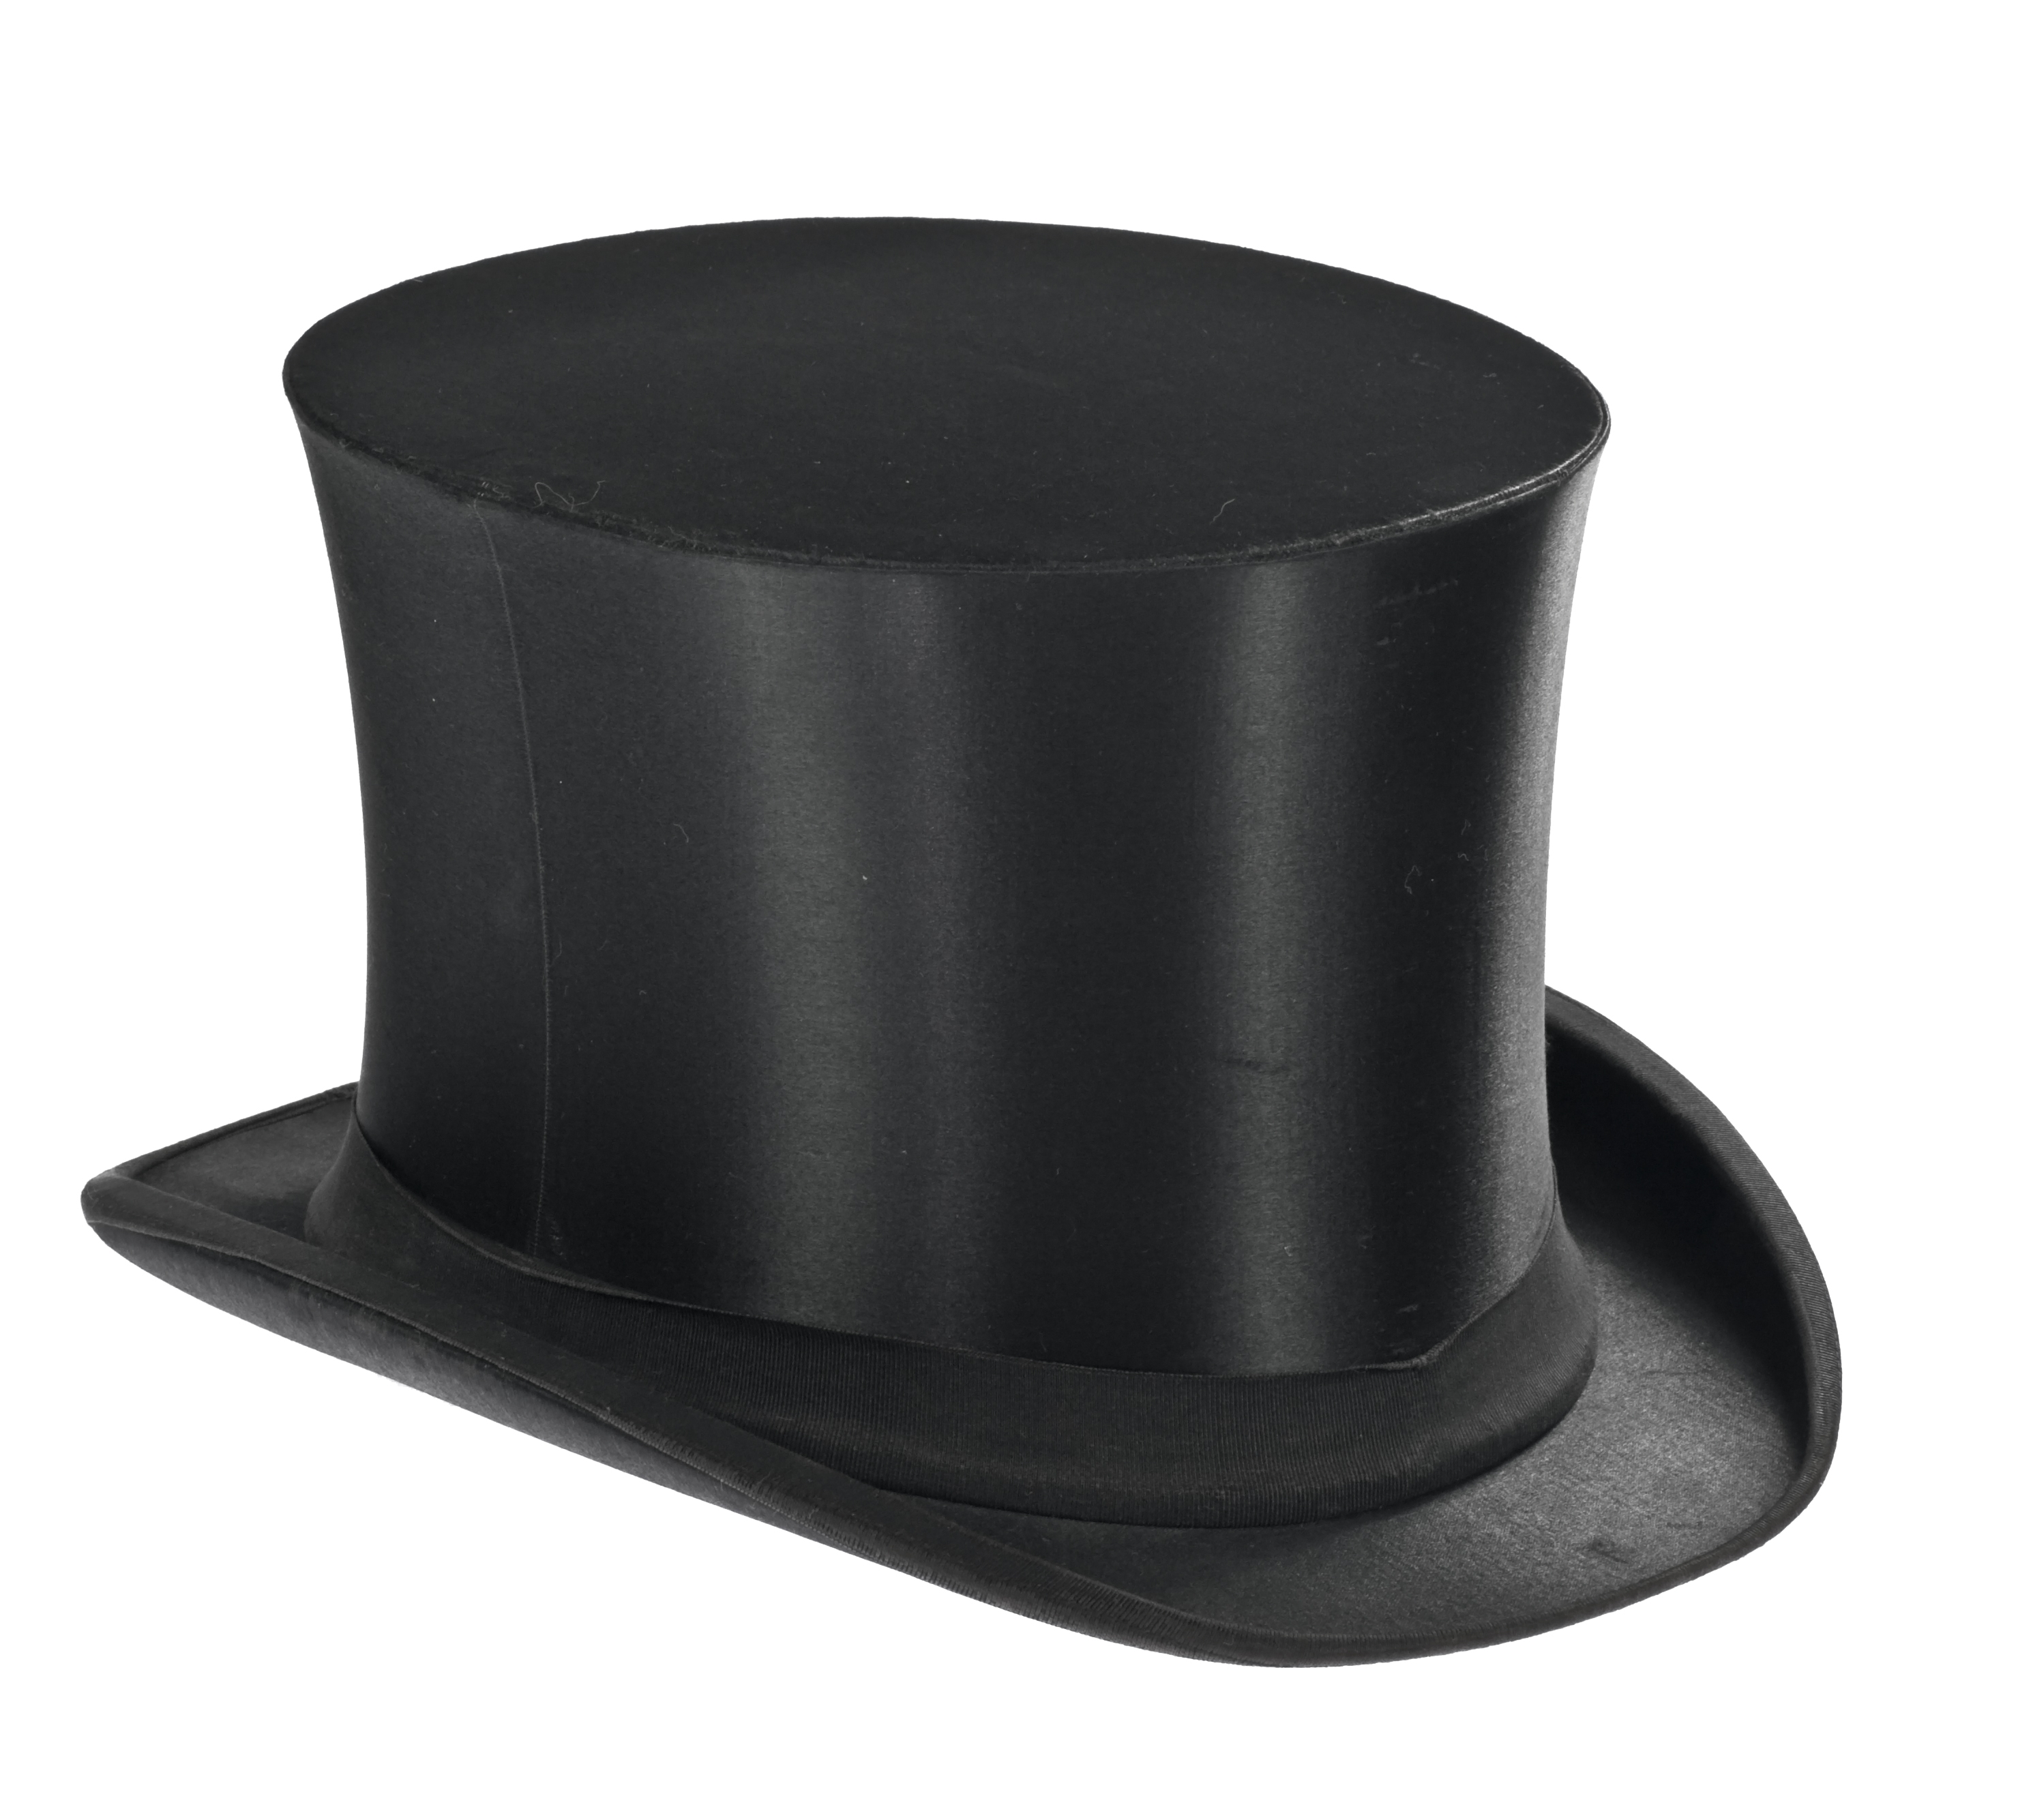 File Collapsible top hat IMGP9662.jpg - Wikimedia Commons a142557cc6d